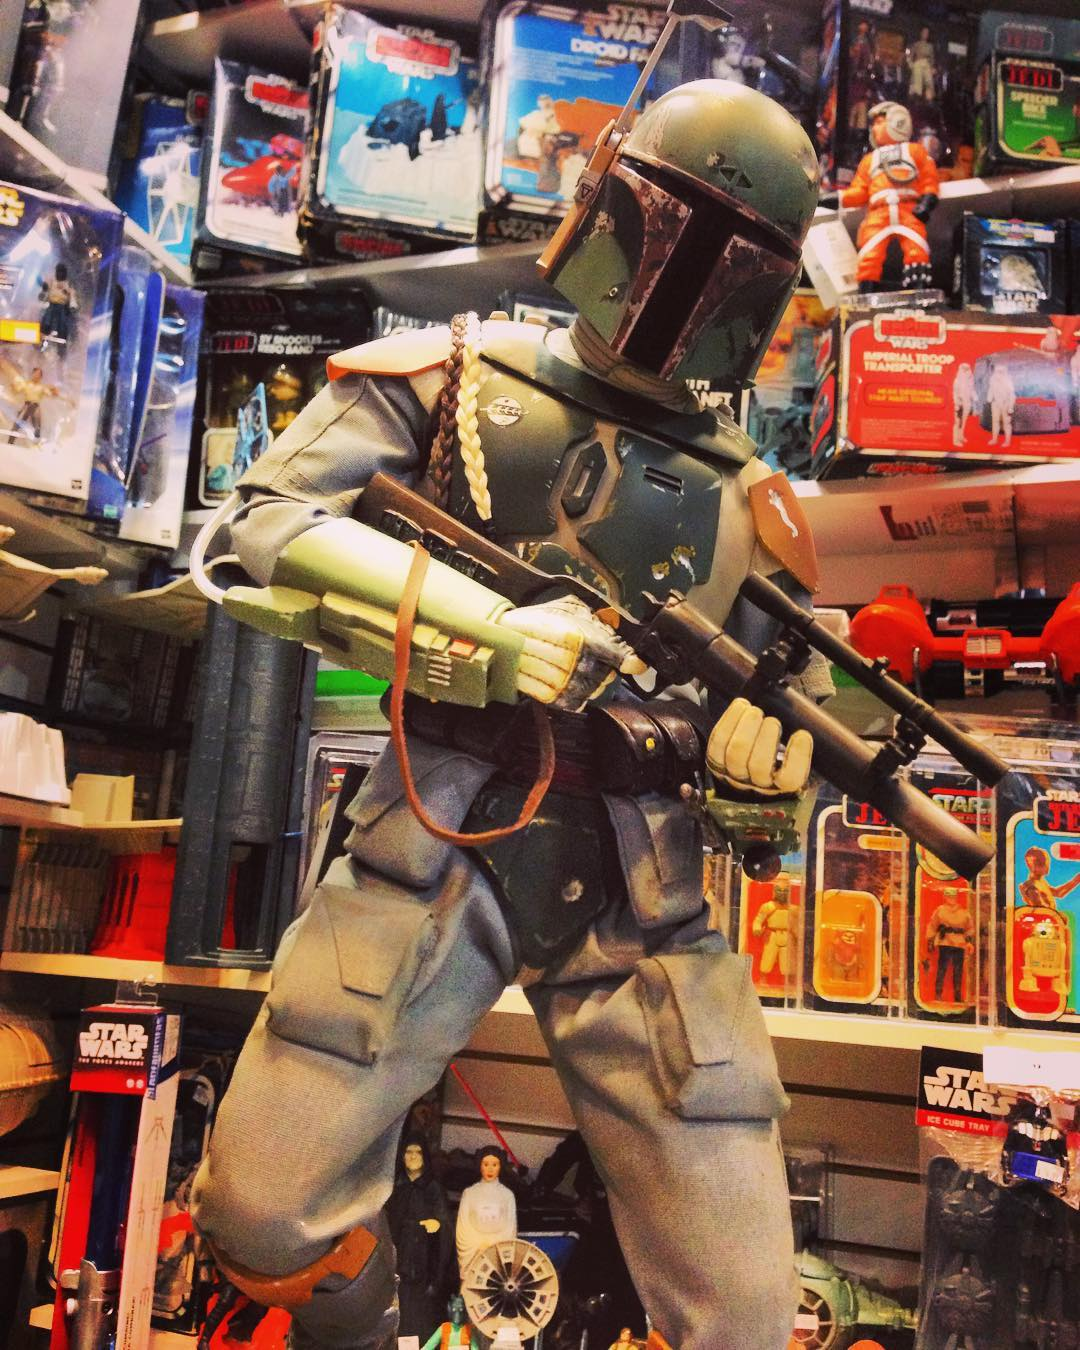 This Sideshow Collectibles Premium Format Boba Fett stands tall among in our massive Star Wars section